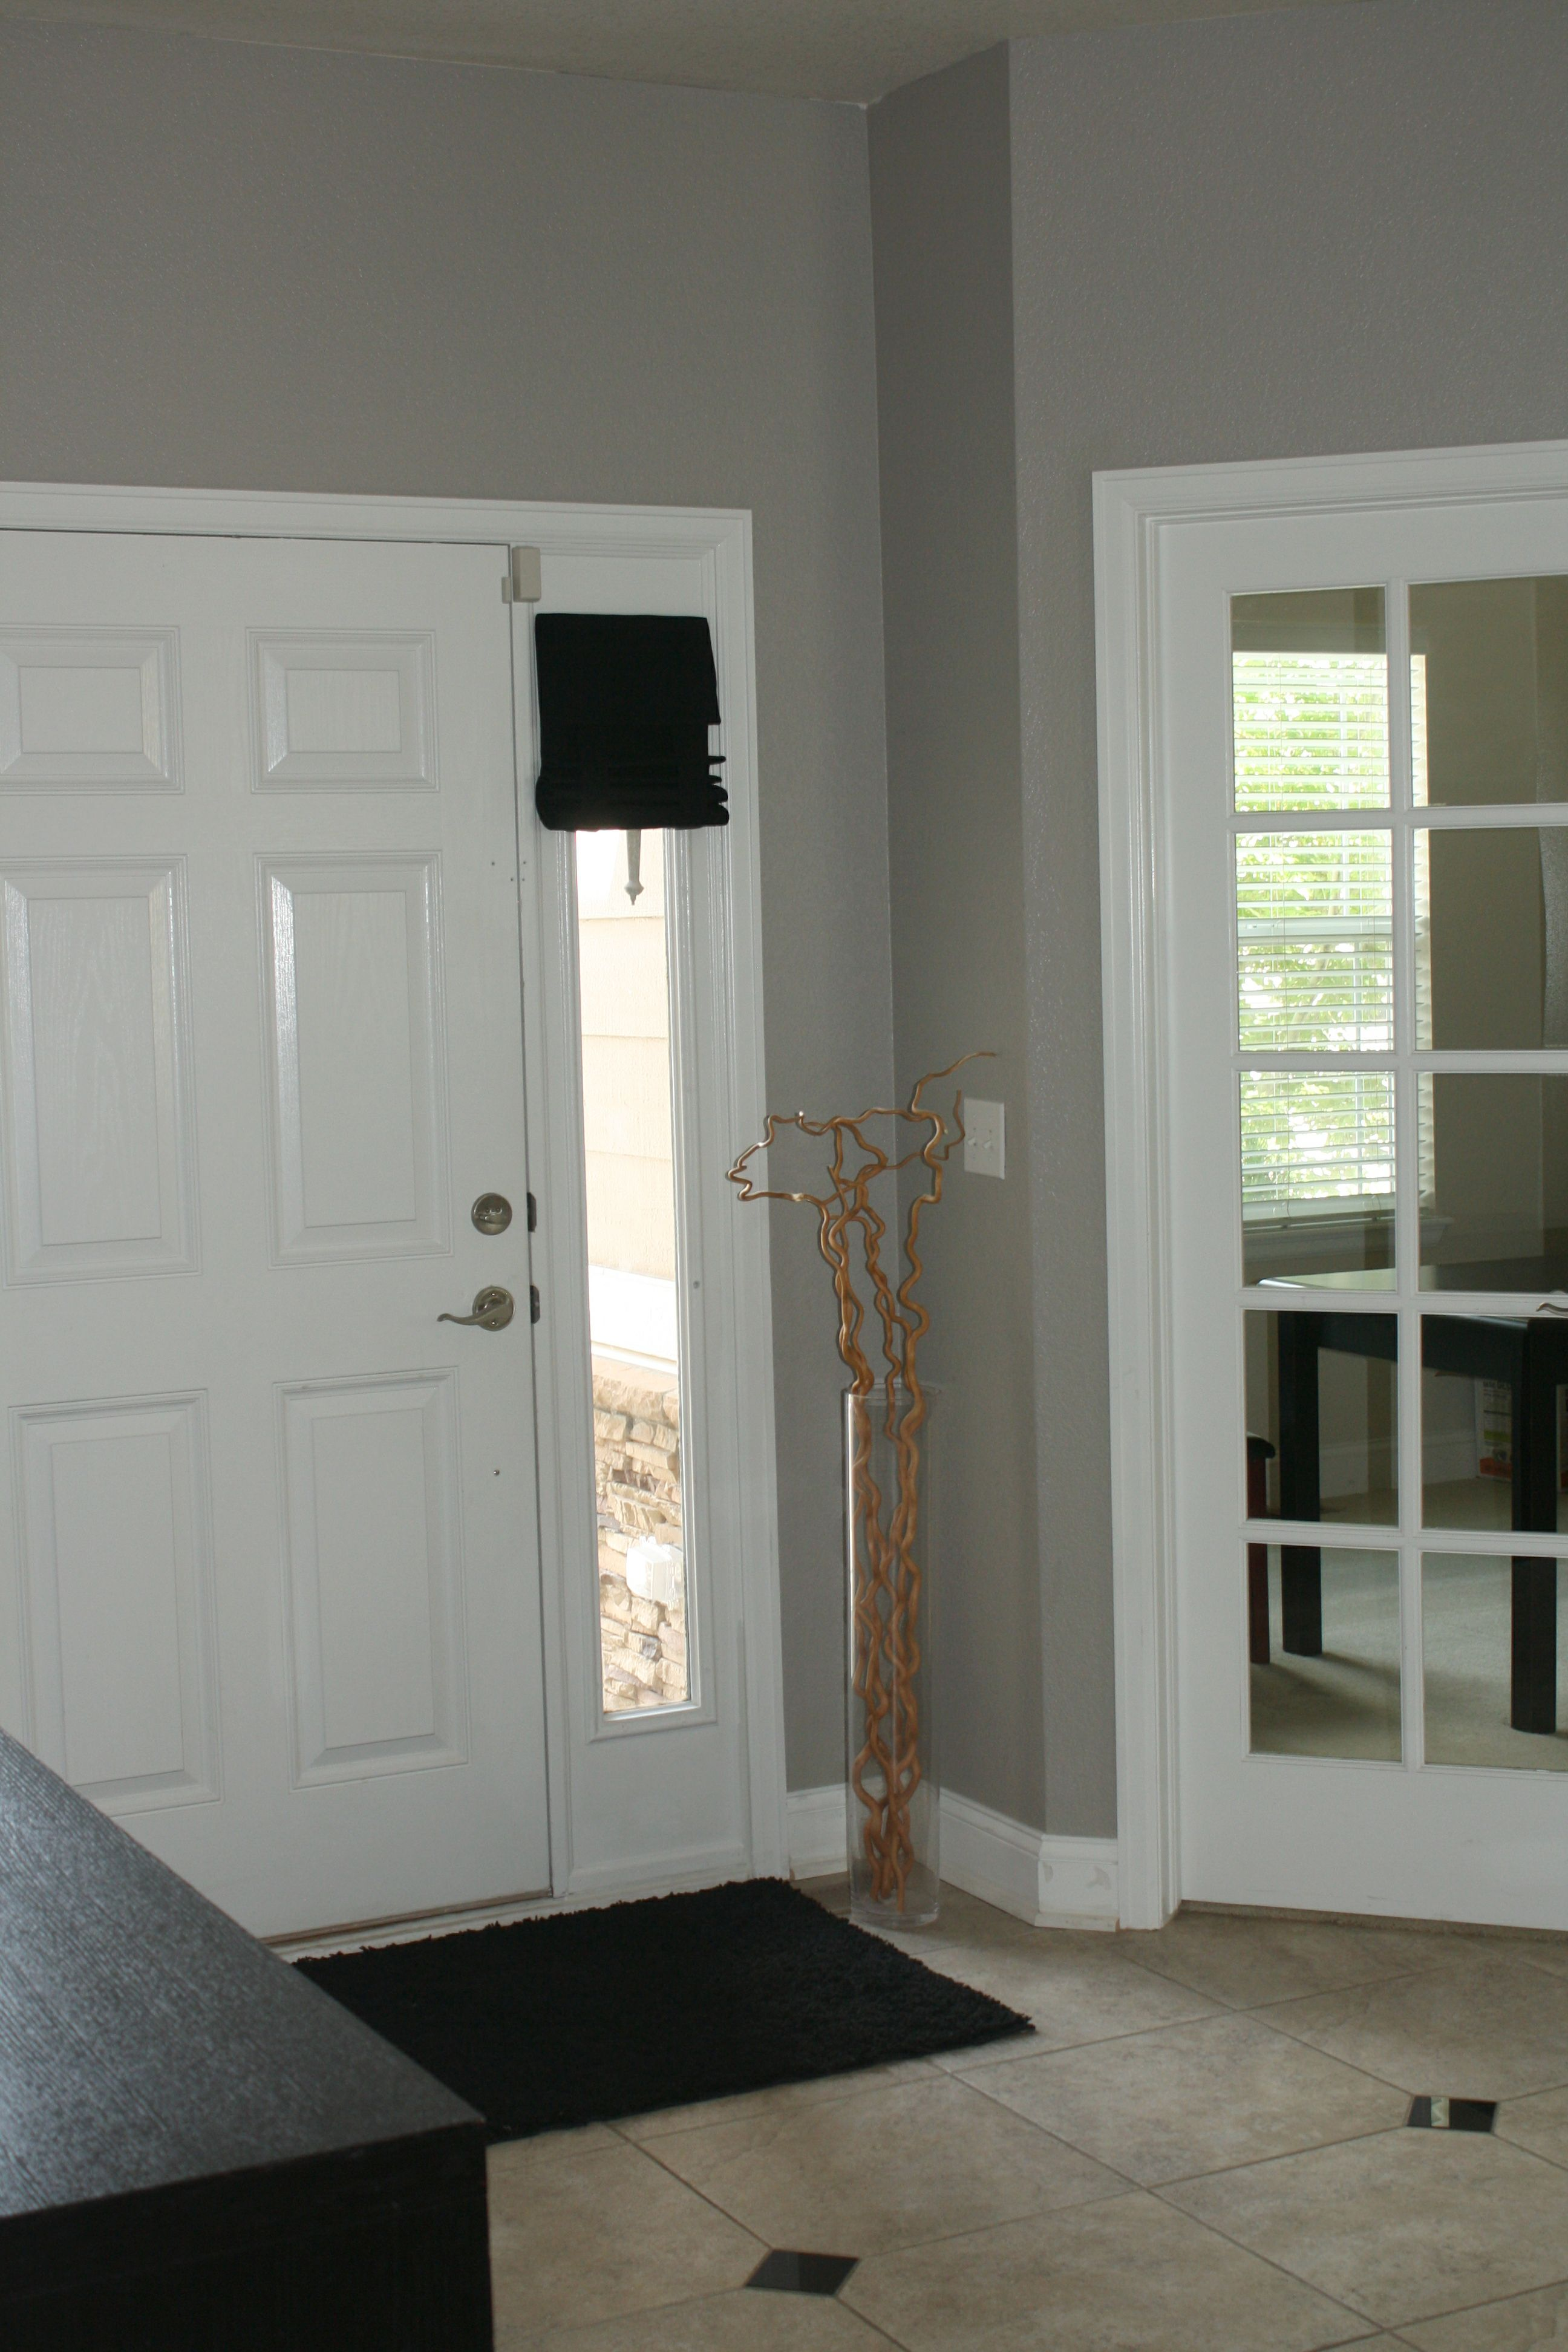 side light curtains provide light control and privacy when need on top of adding a nice - Sidelight Blinds